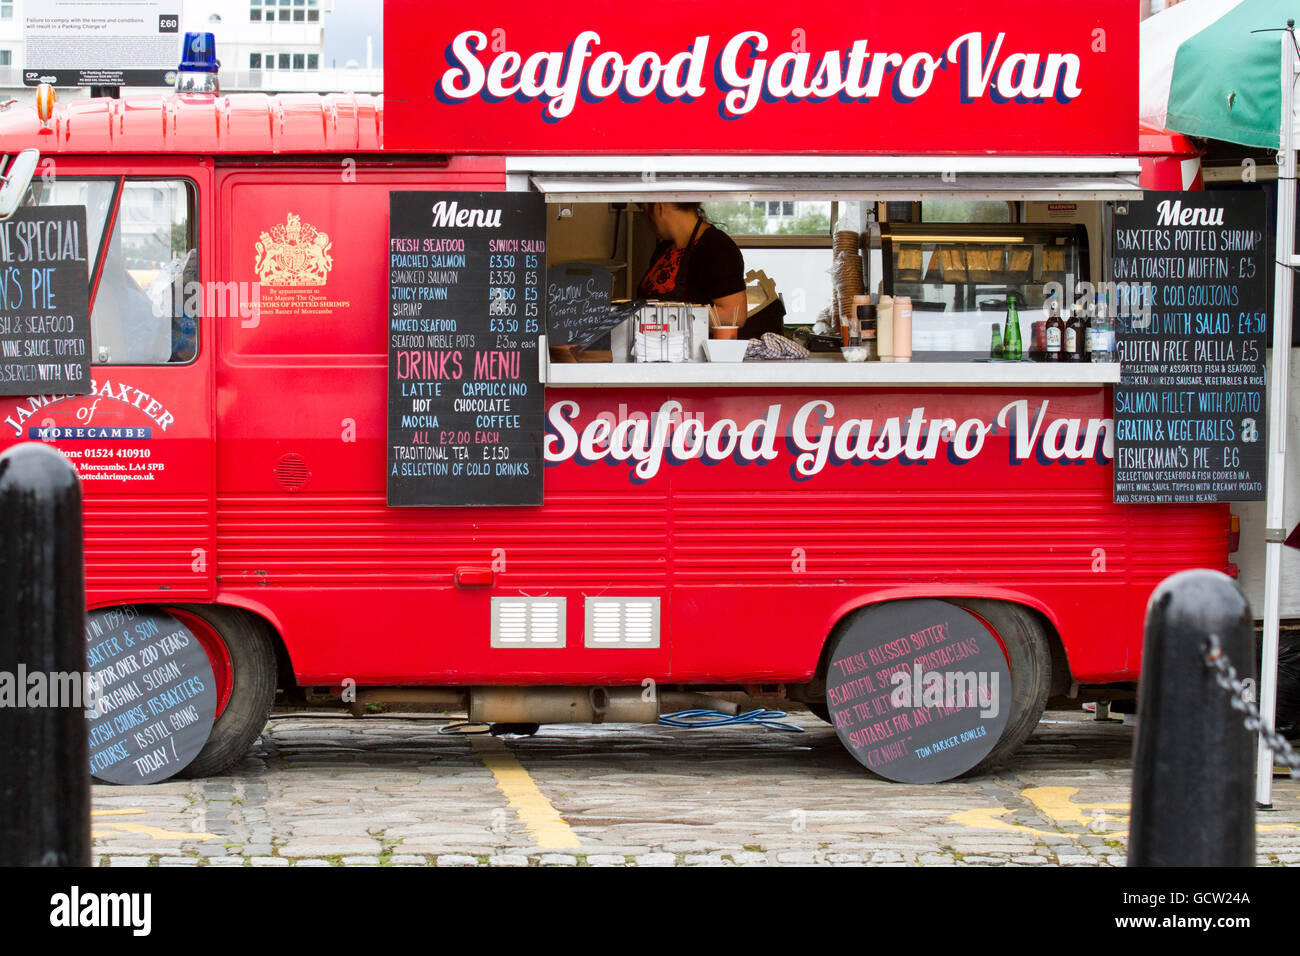 Mobile food vehicle stock photos mobile food vehicle for Docks fish menu